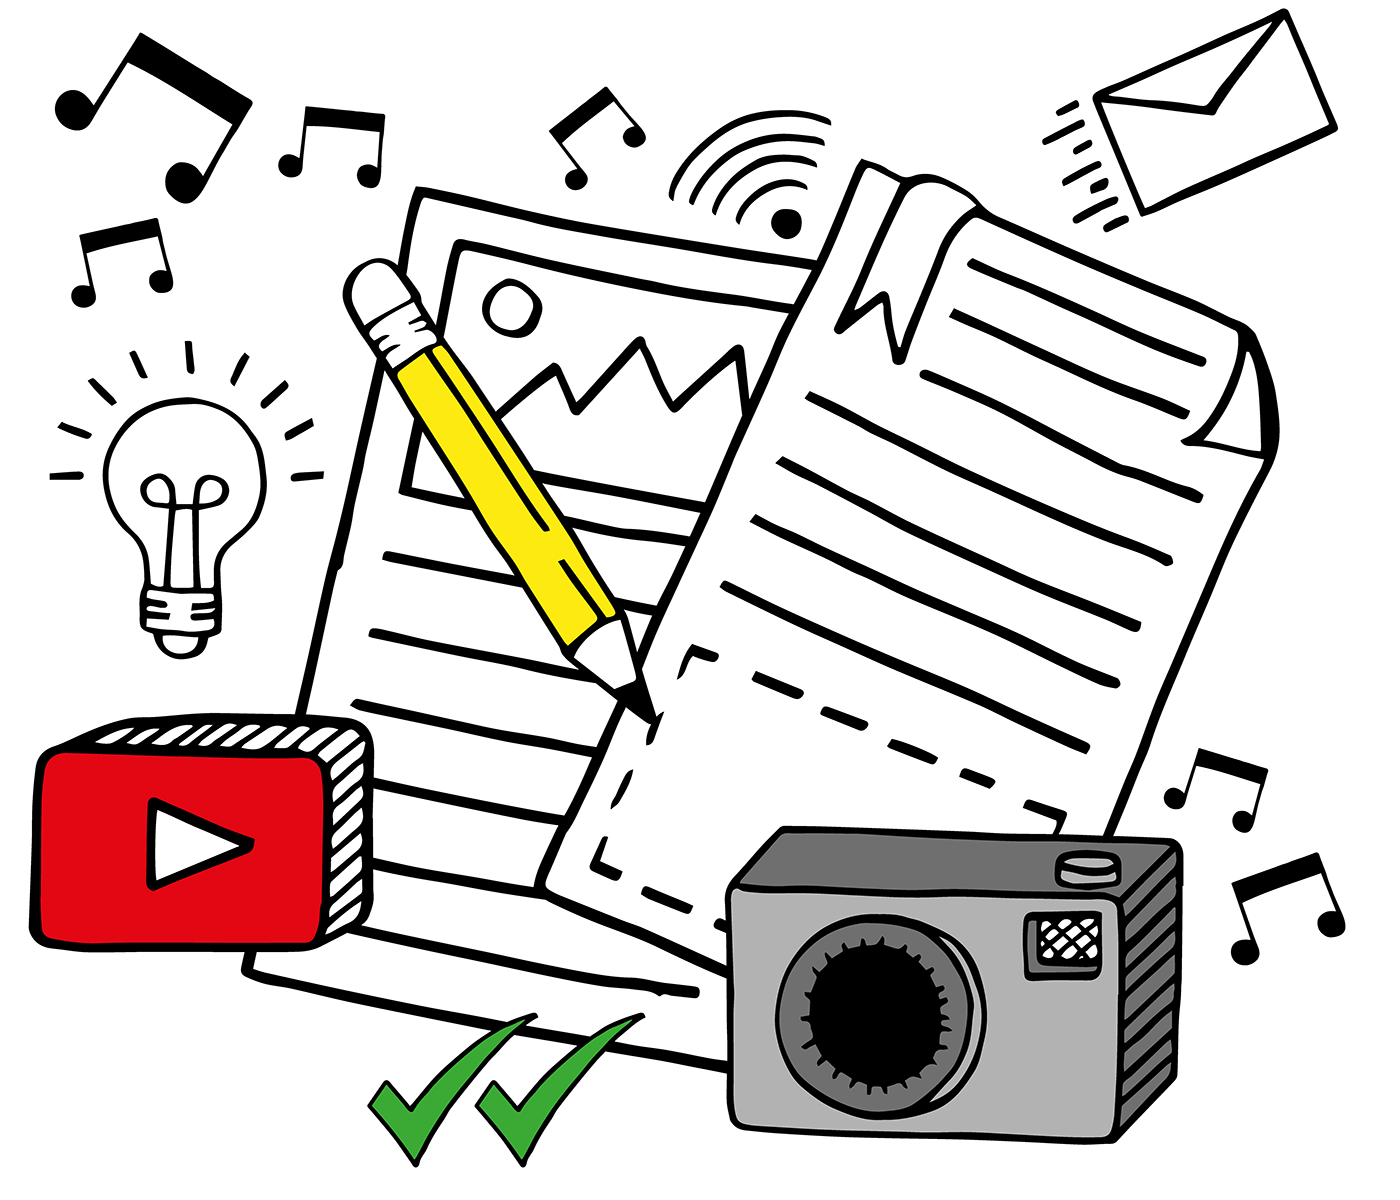 illustration depicting the mechanisms and tools for successful online content.